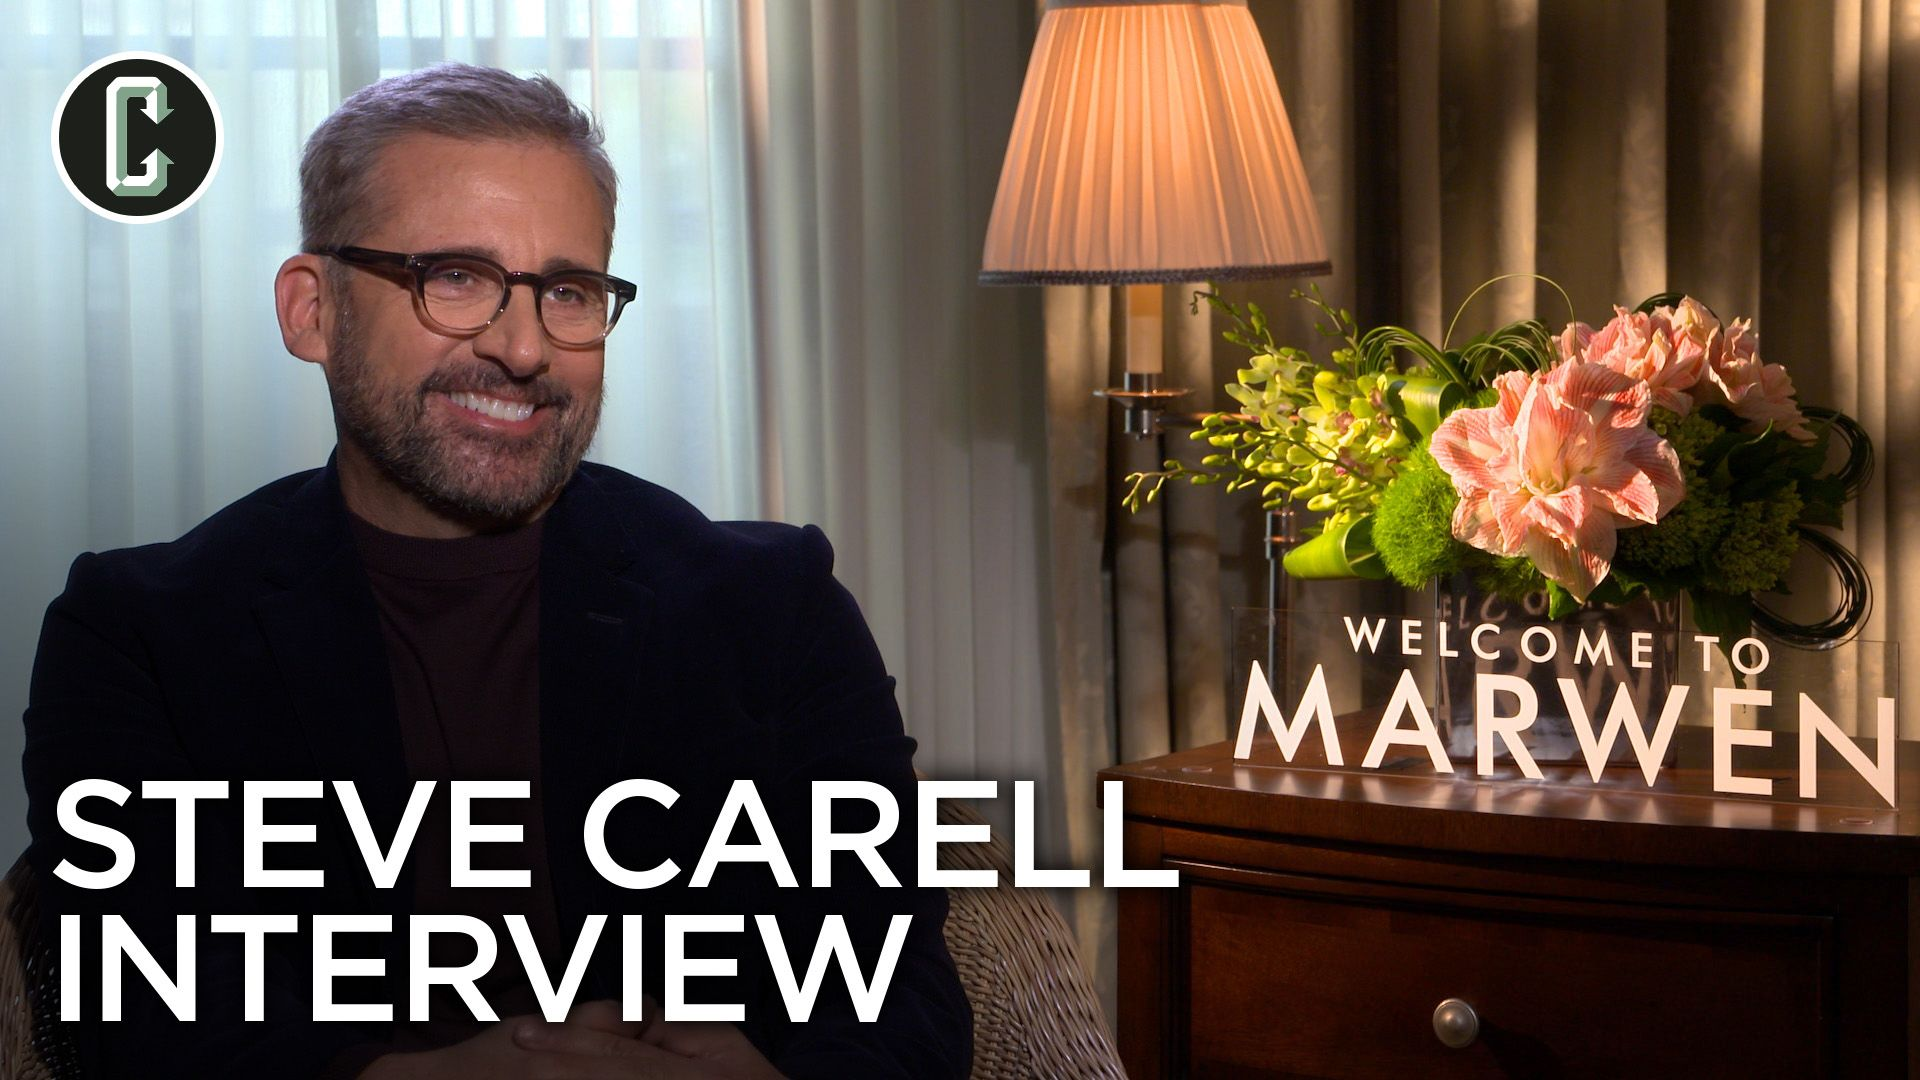 Steve Carell on Working with Professional Doll Handlers on 'Welcome to Marwen'